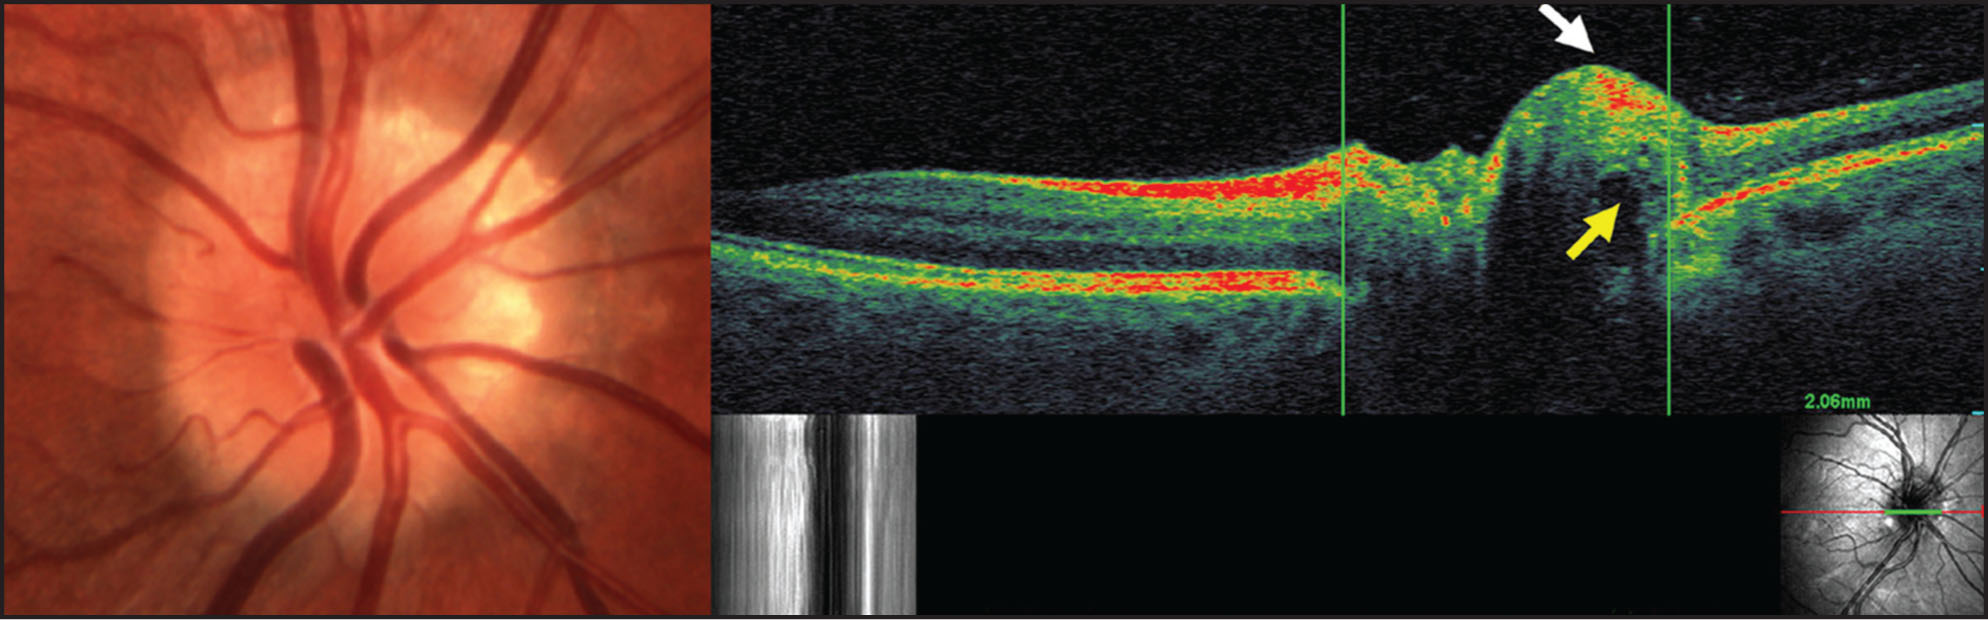 Optical Coherence Tomography/scanning Laser Ophthalmoscopy (OCT/SLO) of Optic Nerve Head Drusen. (Left) Right Optic Nerve Photograph Demonstrating Superonasal/nasal Visible Drusen that Obscure the Disc Margin. (Right) SLO-Guided OCT B-Scan Through the Center of the Optic Disc Cup and Peripheral Nasal Drusen, Avoiding Traversing Blood Vessels at the Margin (see Grayscale SLO Image, Lower Right). Disc Diameter Is Estimated by Vertical Calipers Placed at the Retinal Pigment Epithelium (RPE) Termination Site. A Corresponding Horizontal Green Line Is Superimposed over the SLO En Face Image, Demonstrating a Larger Measured Disc Size on the Transverse OCT Scan than Appreciated by the SLO Image. Note also the Shallowed Optic Nerve Cup, Hyperreflectivity of the Visible Drusen with Nerve Fiber Layer Displacement (white Arrow), Underlying Posterior Shadowing (yellow Arrow), and RPE Disorganization.